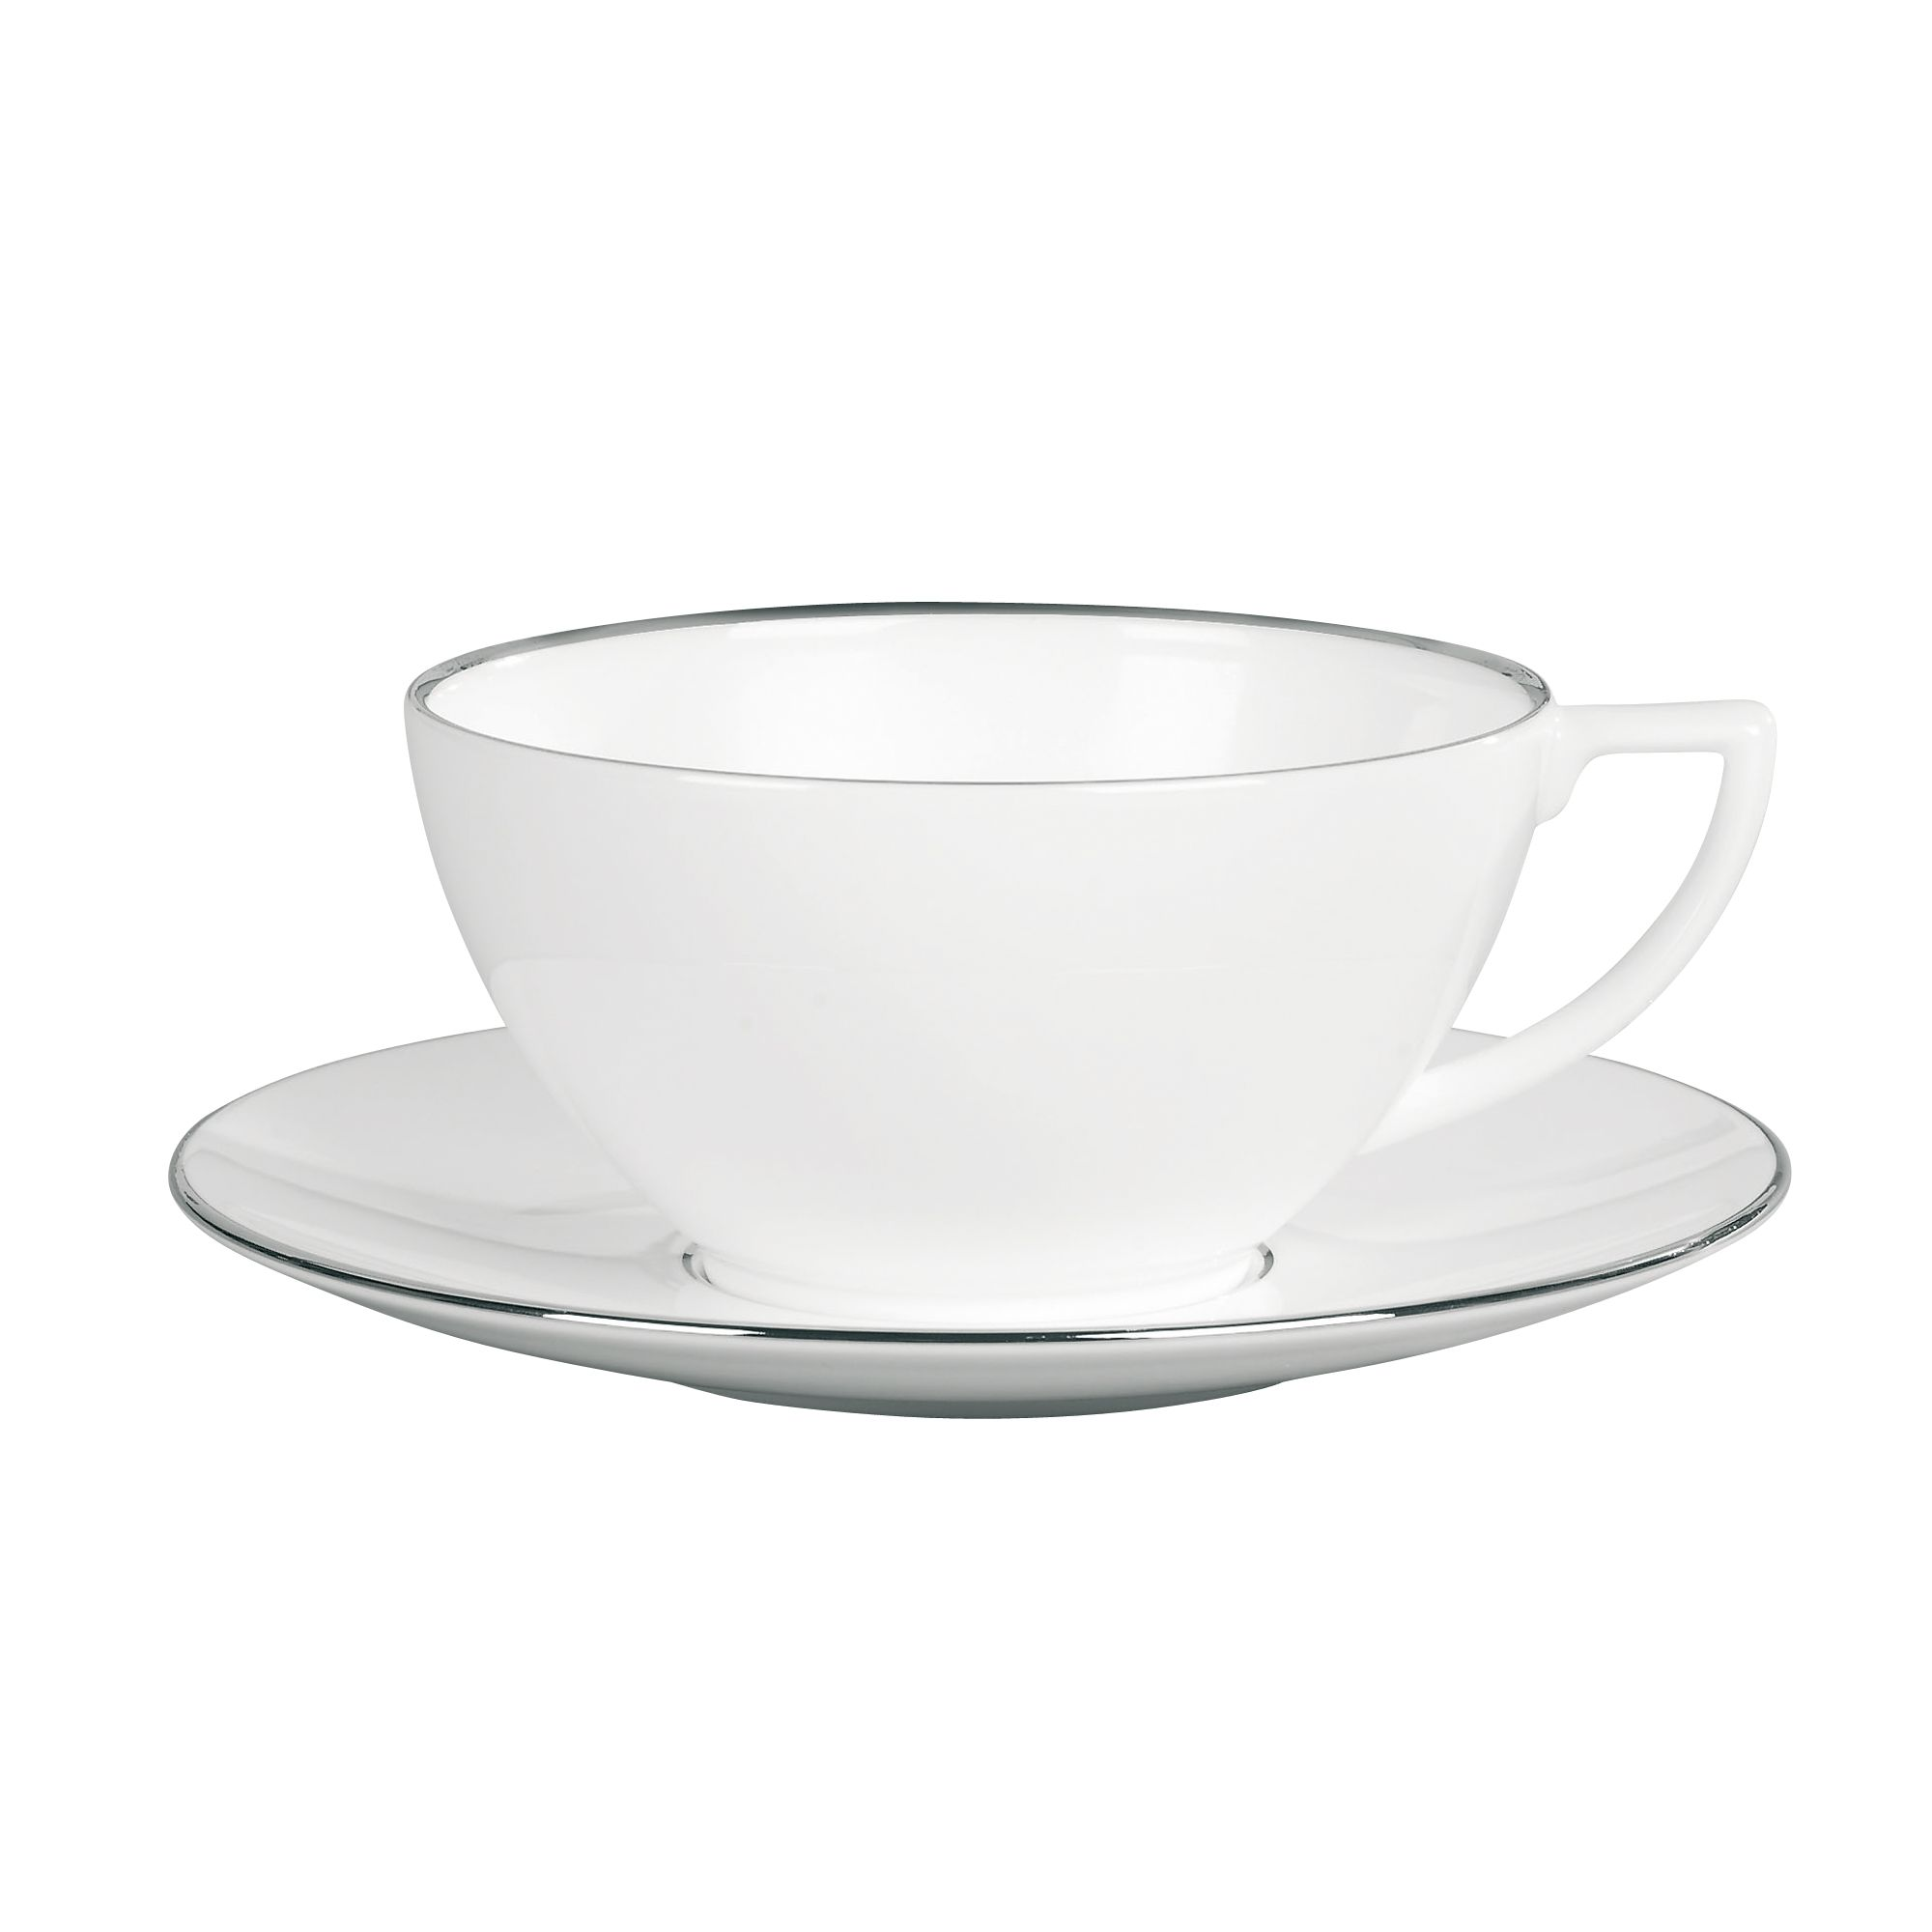 Platinum Large Tea Saucer